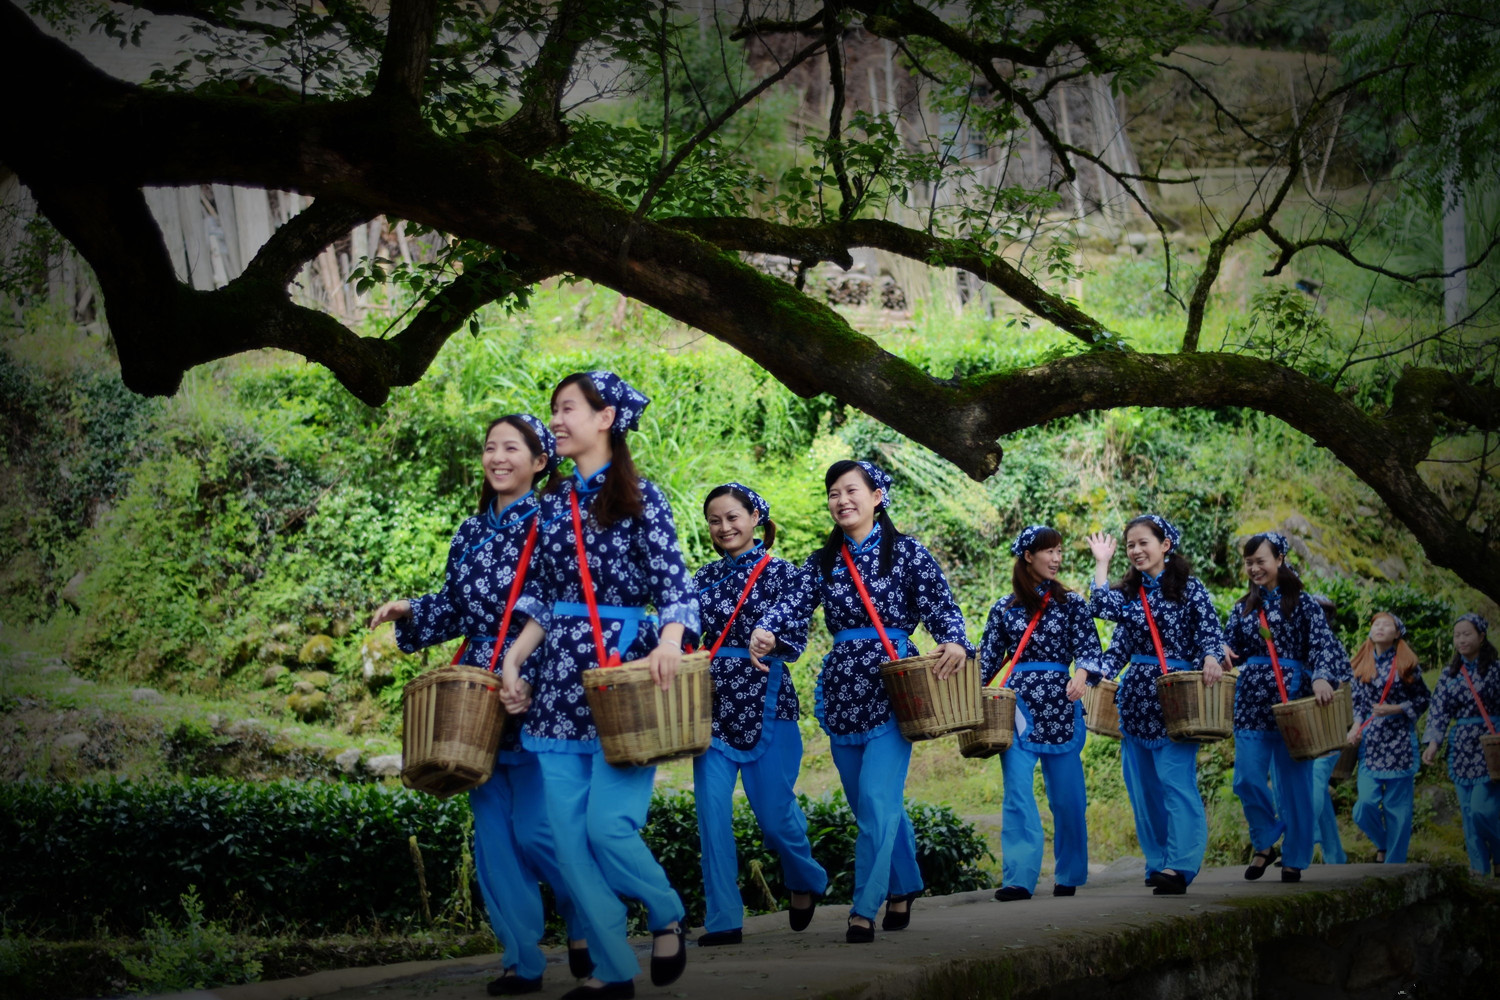 Tea-picking Girls in Longjing Village